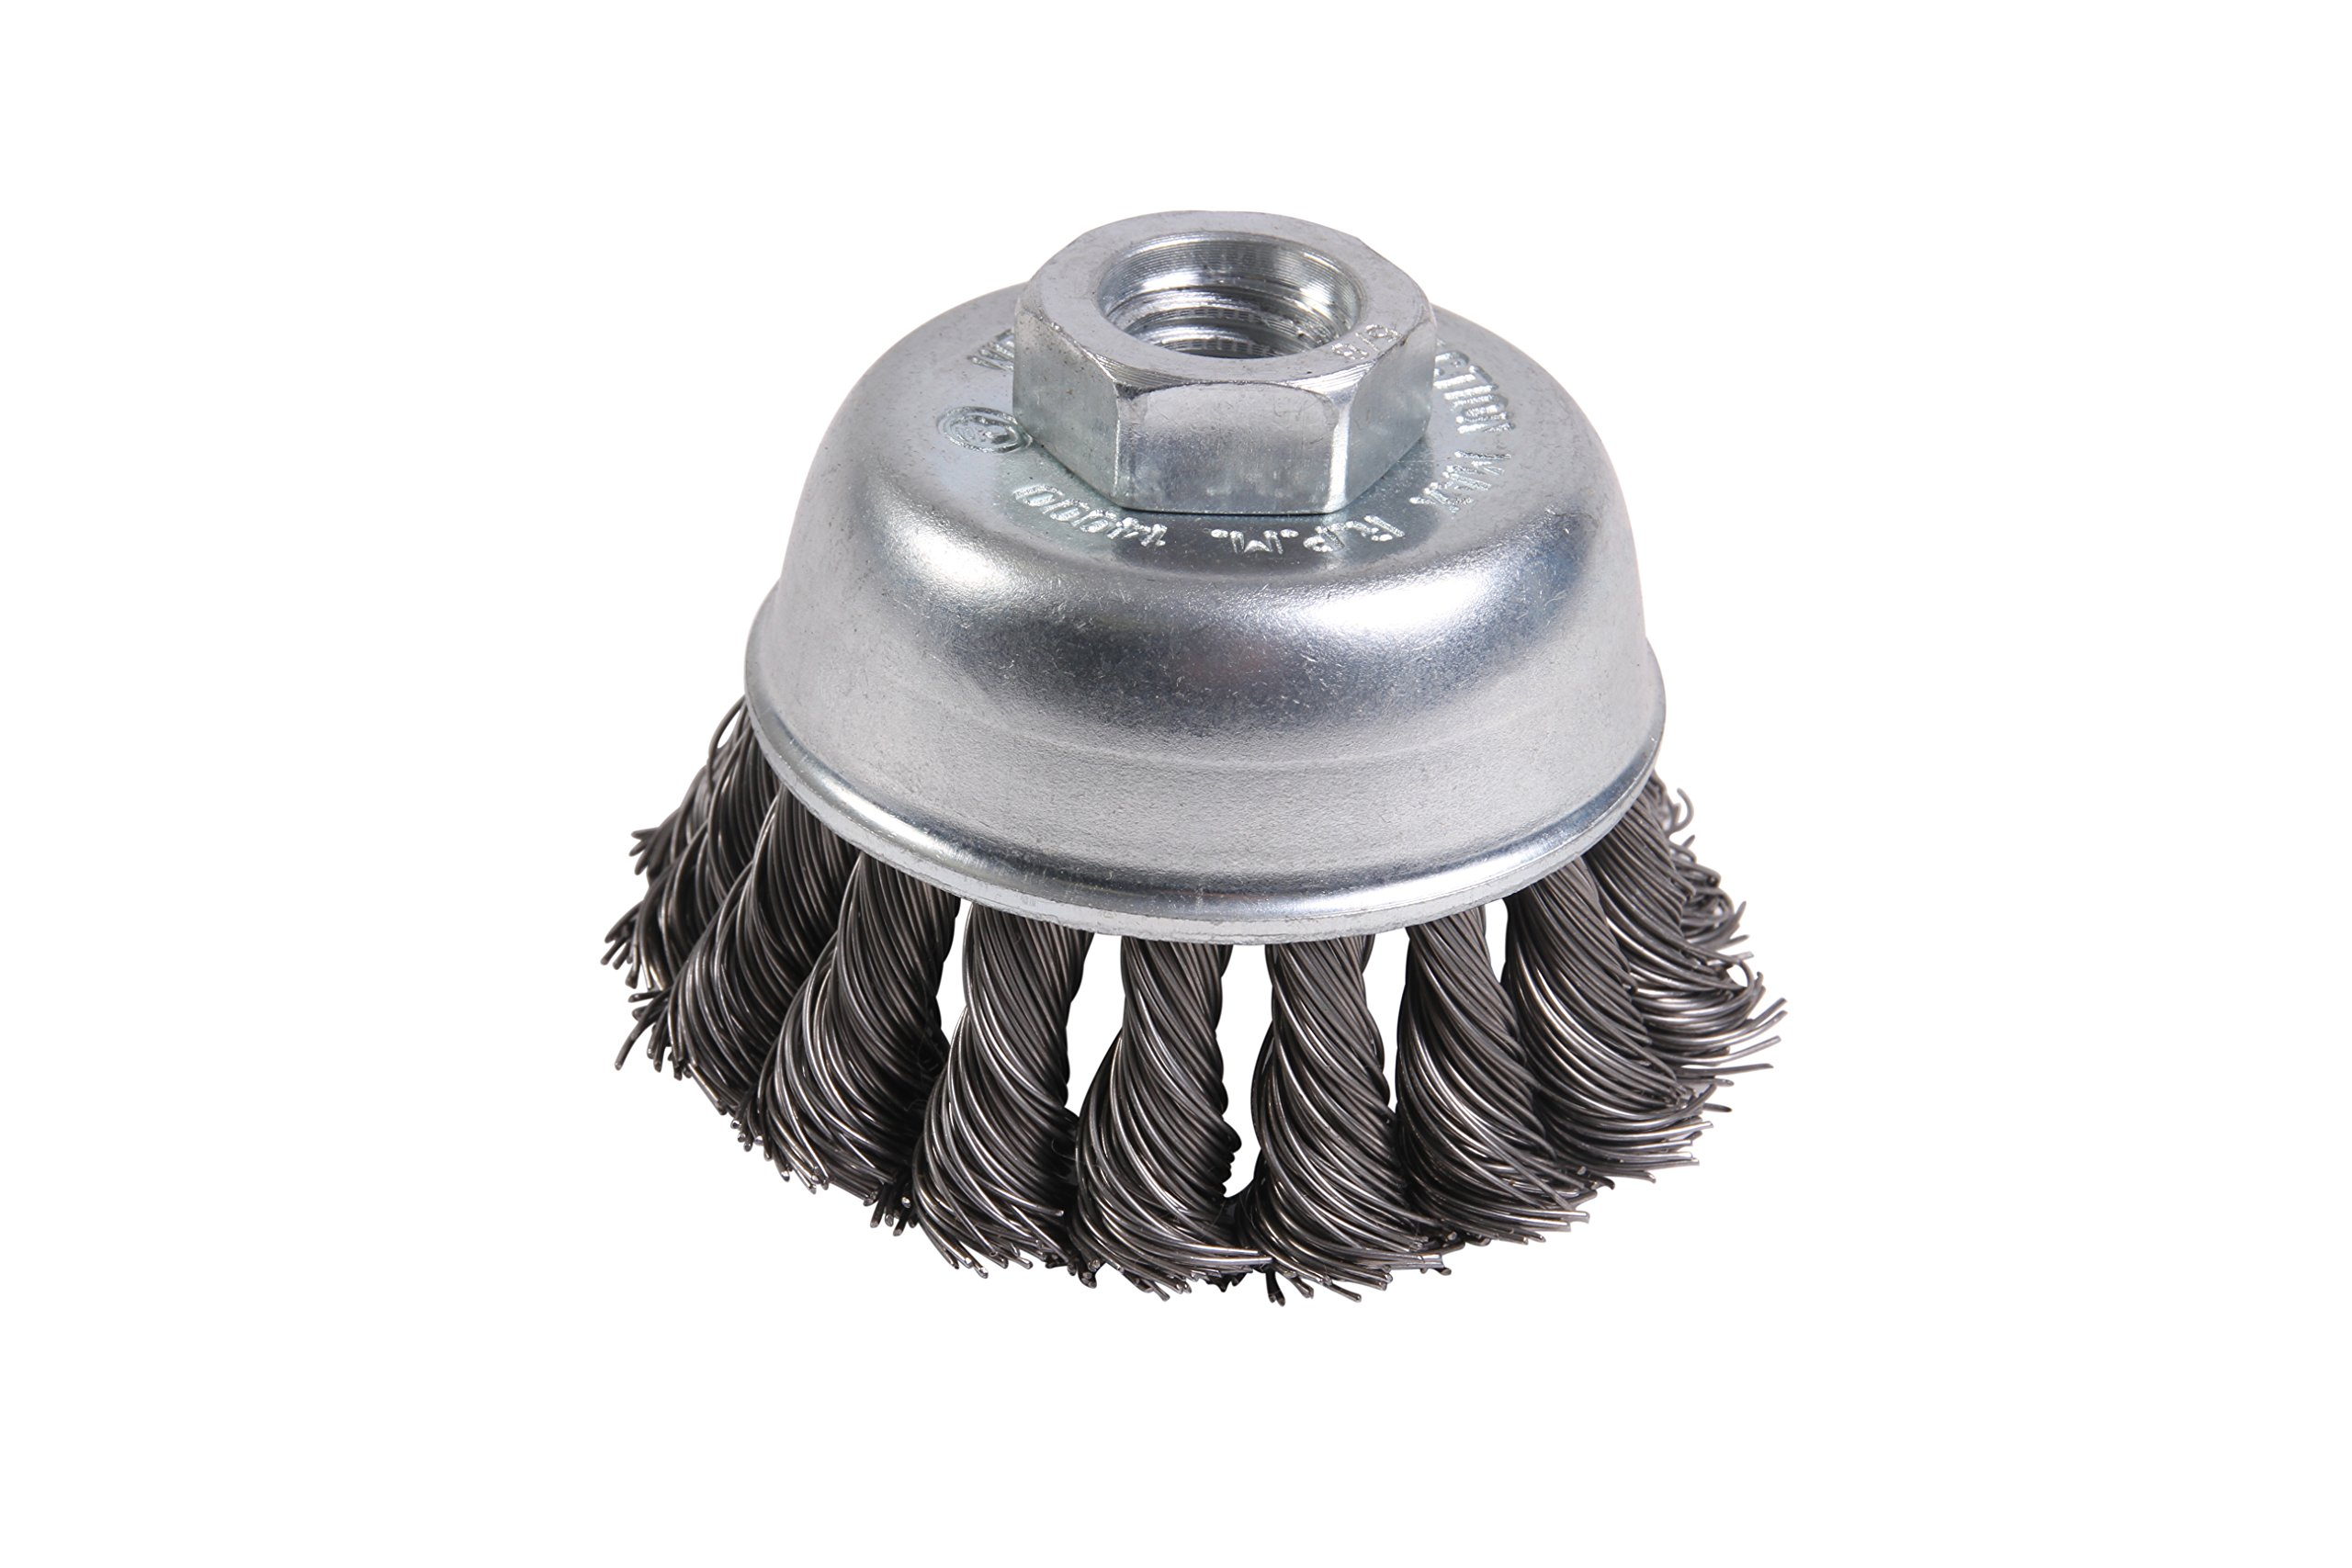 Mercer 189011B Premium Knot Cup Brush 2-3/4'' x 5/8''-11 For Angle Grinders, 10-Pack